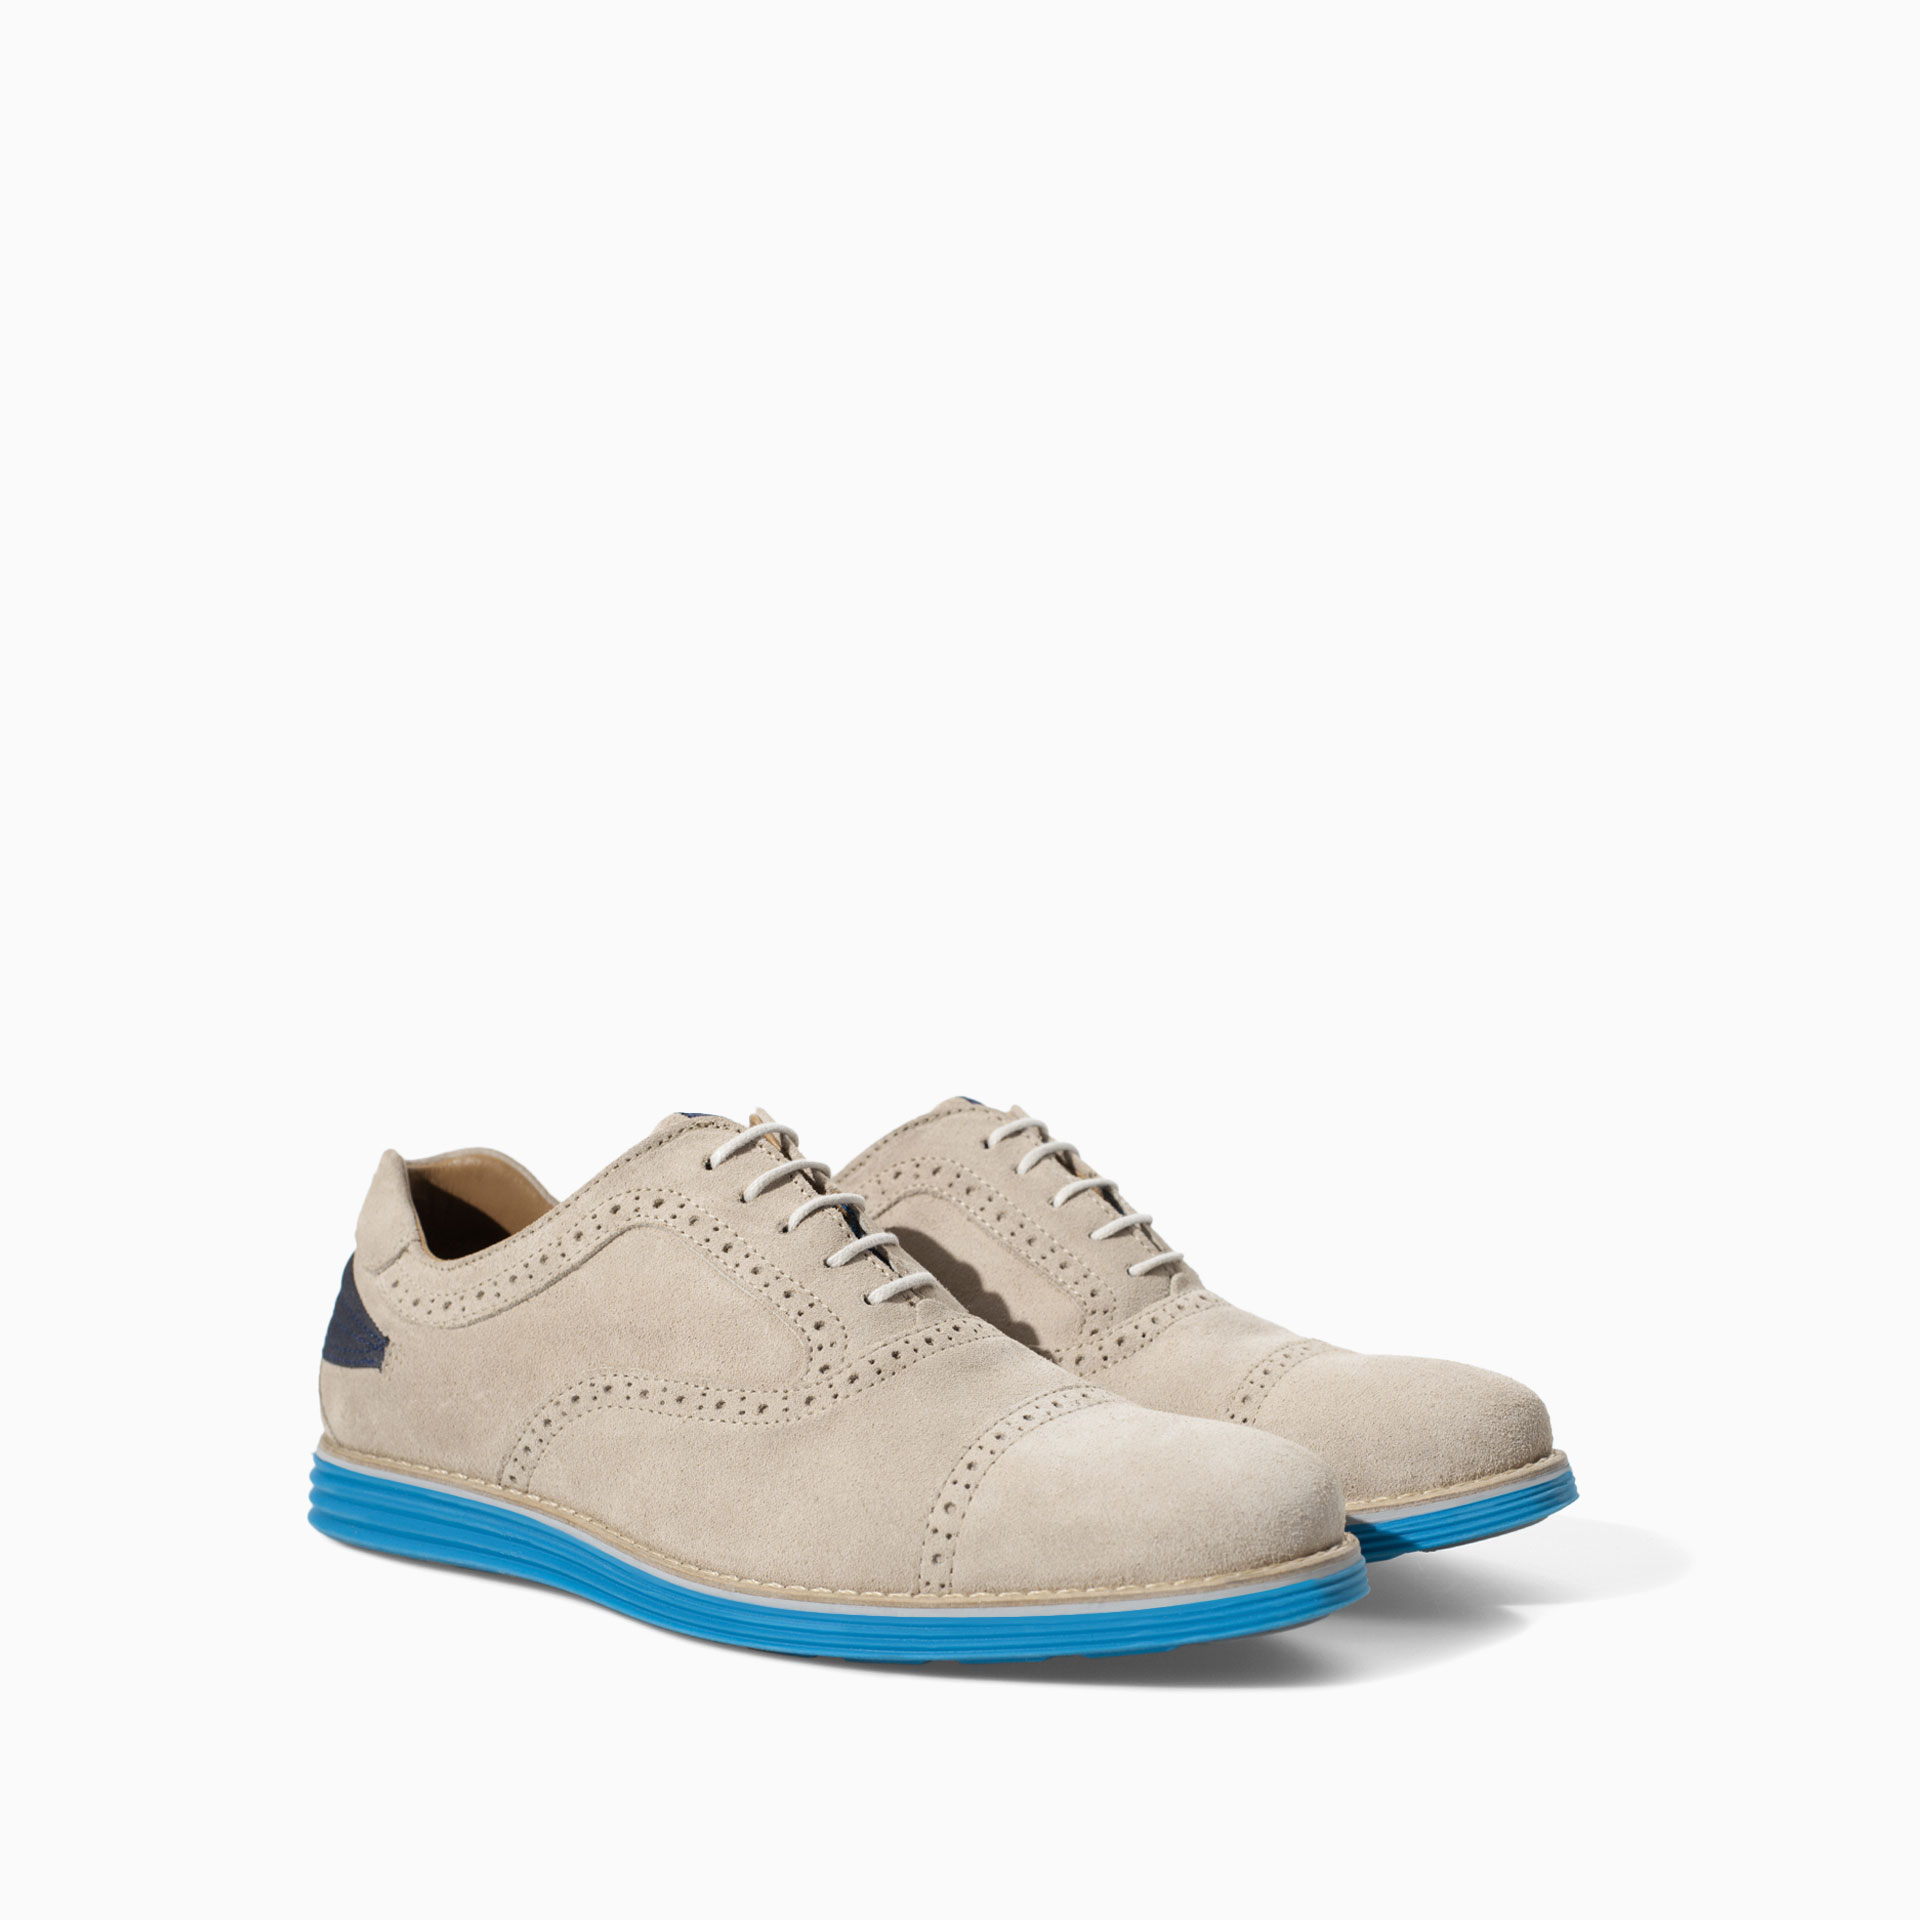 Mens Oxford Shoes Shopstyle